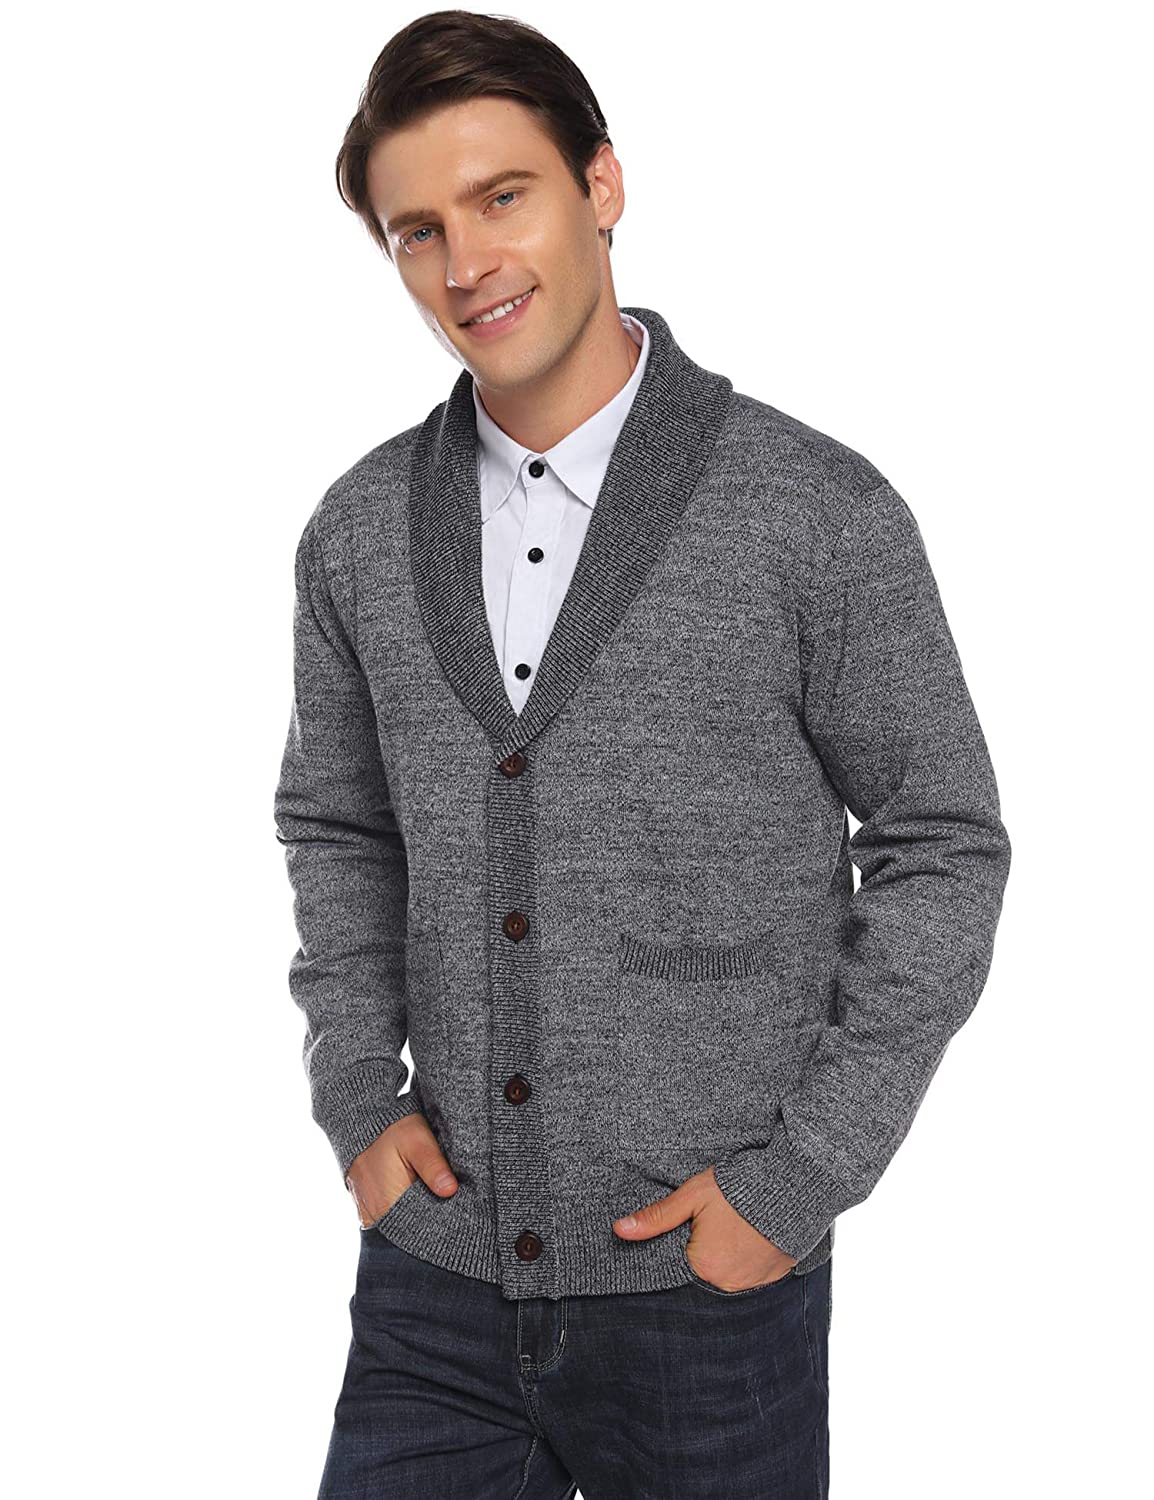 iClosam Mens Knitted Cardigan Lightweight Knitwear Button V-Neck Slim Fit Knitted Cardigans Sweater with Front Pockets